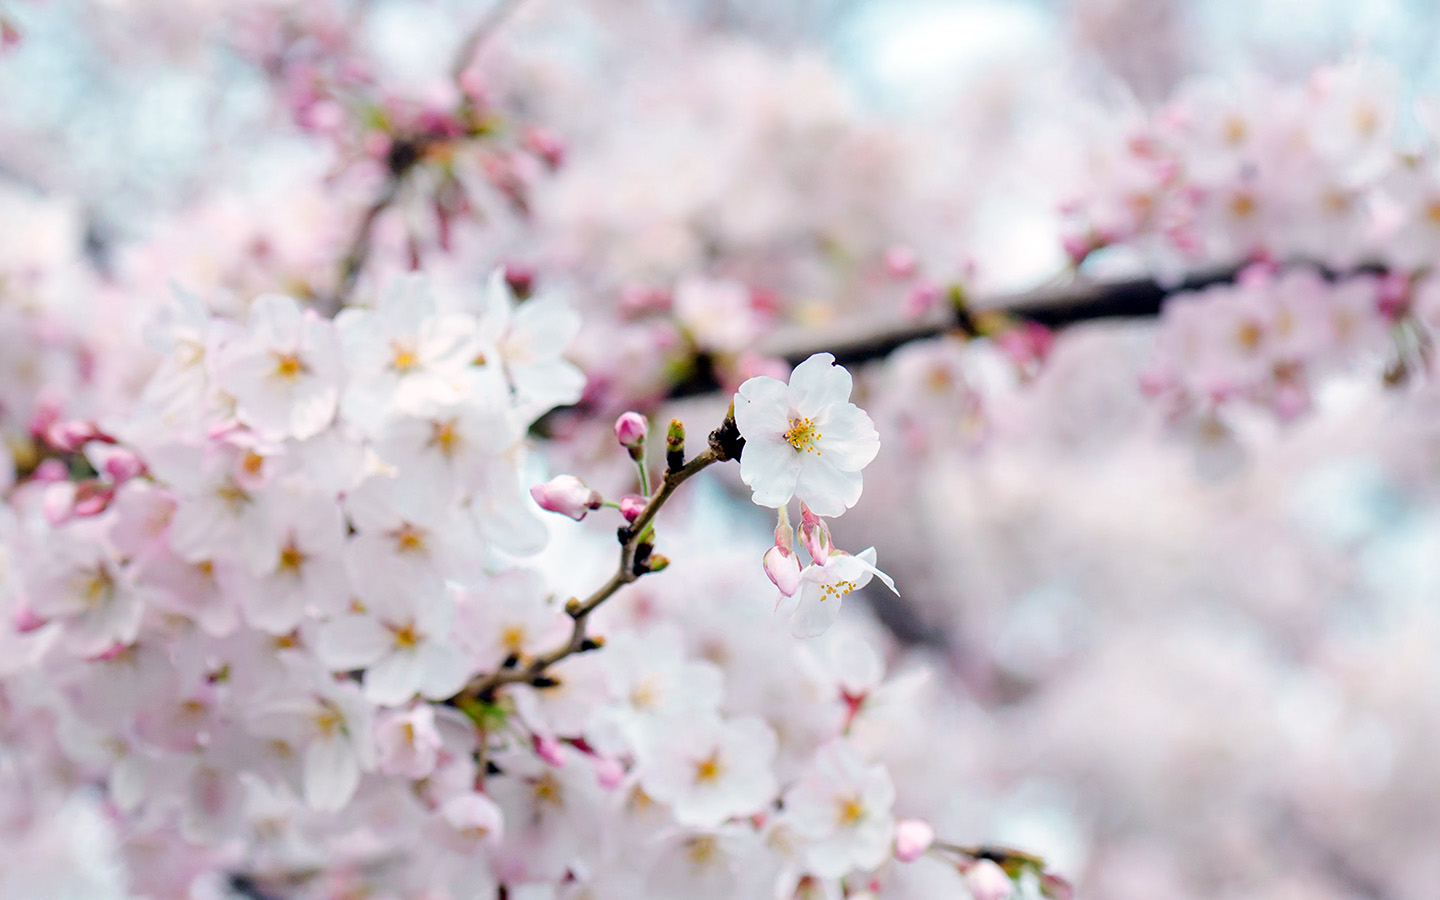 nx70-cherry-blossom-flower-spring-tree-bokeh-nature-wallpaper